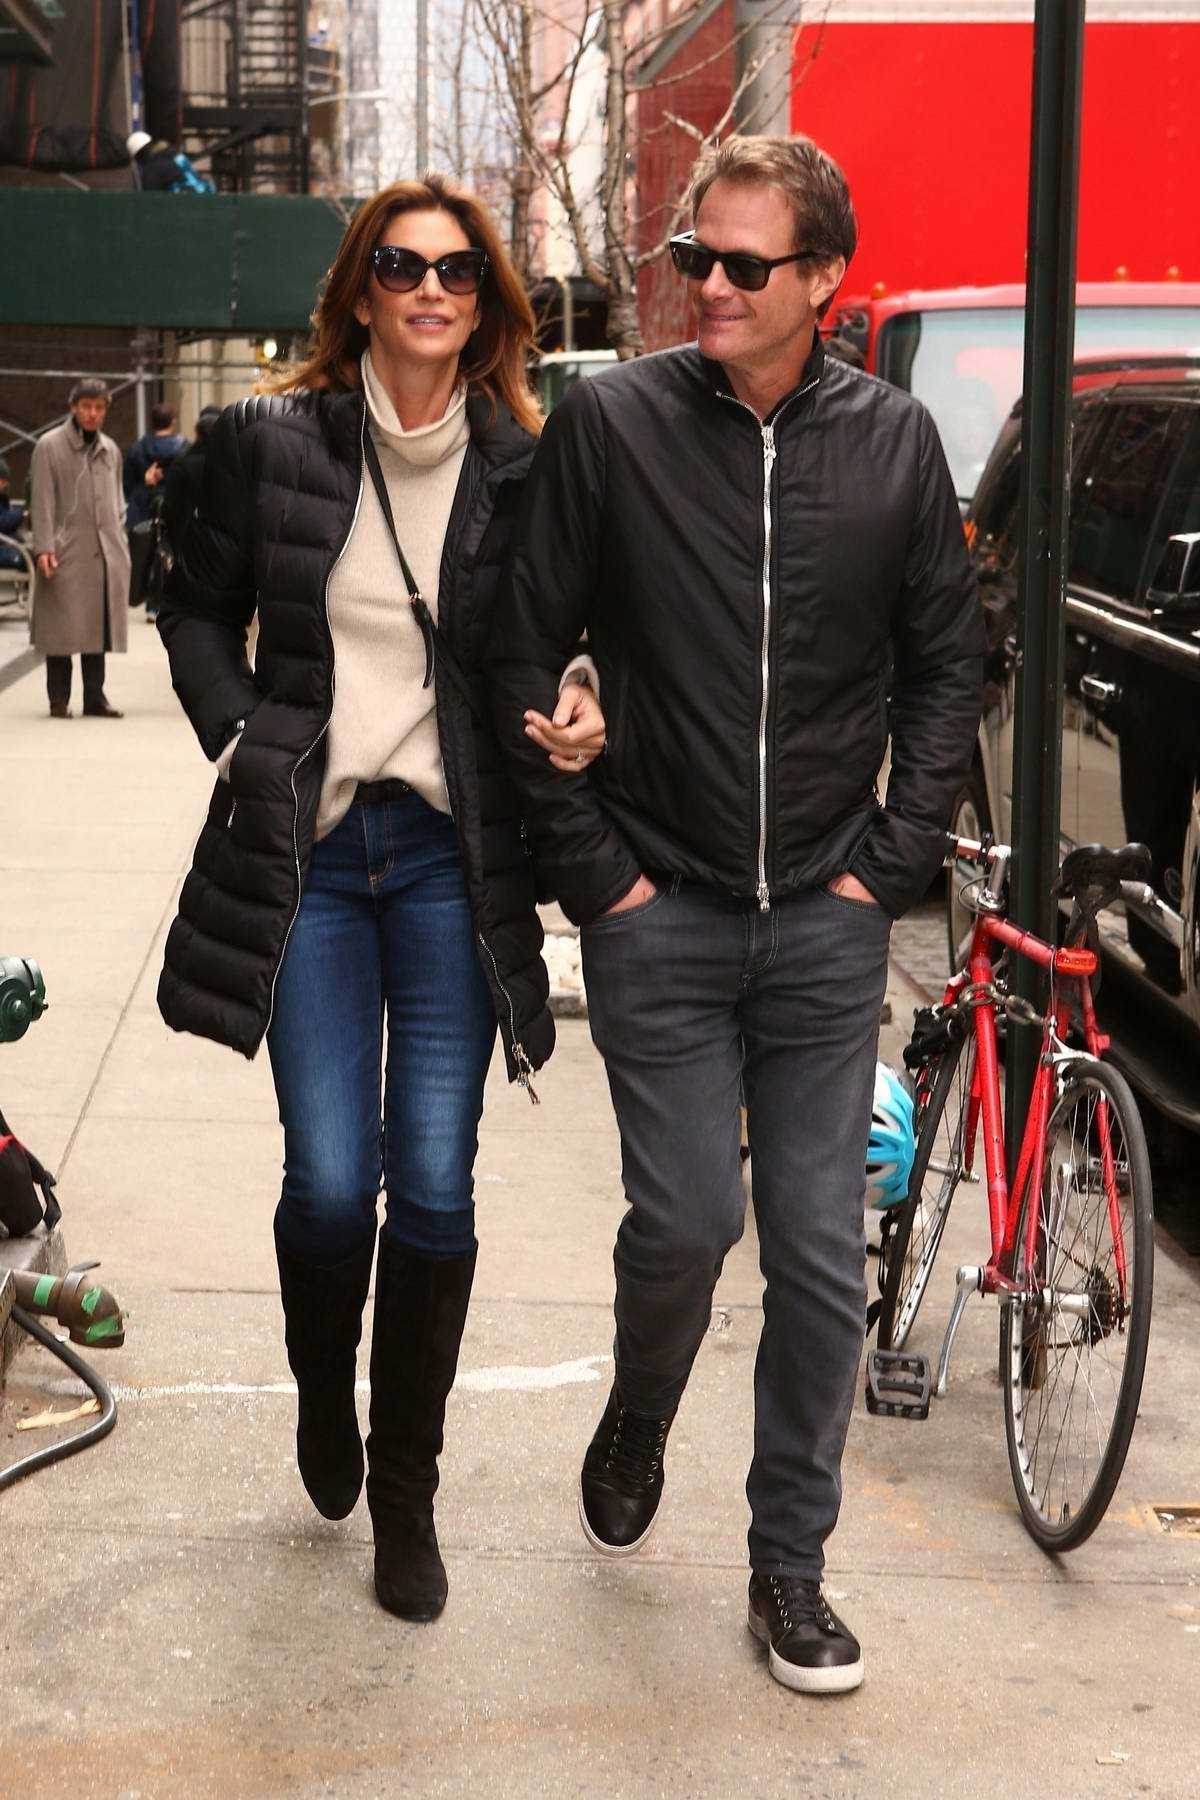 Cindy Crawford and Rande Gerber spend Valentine's Day together in New York City